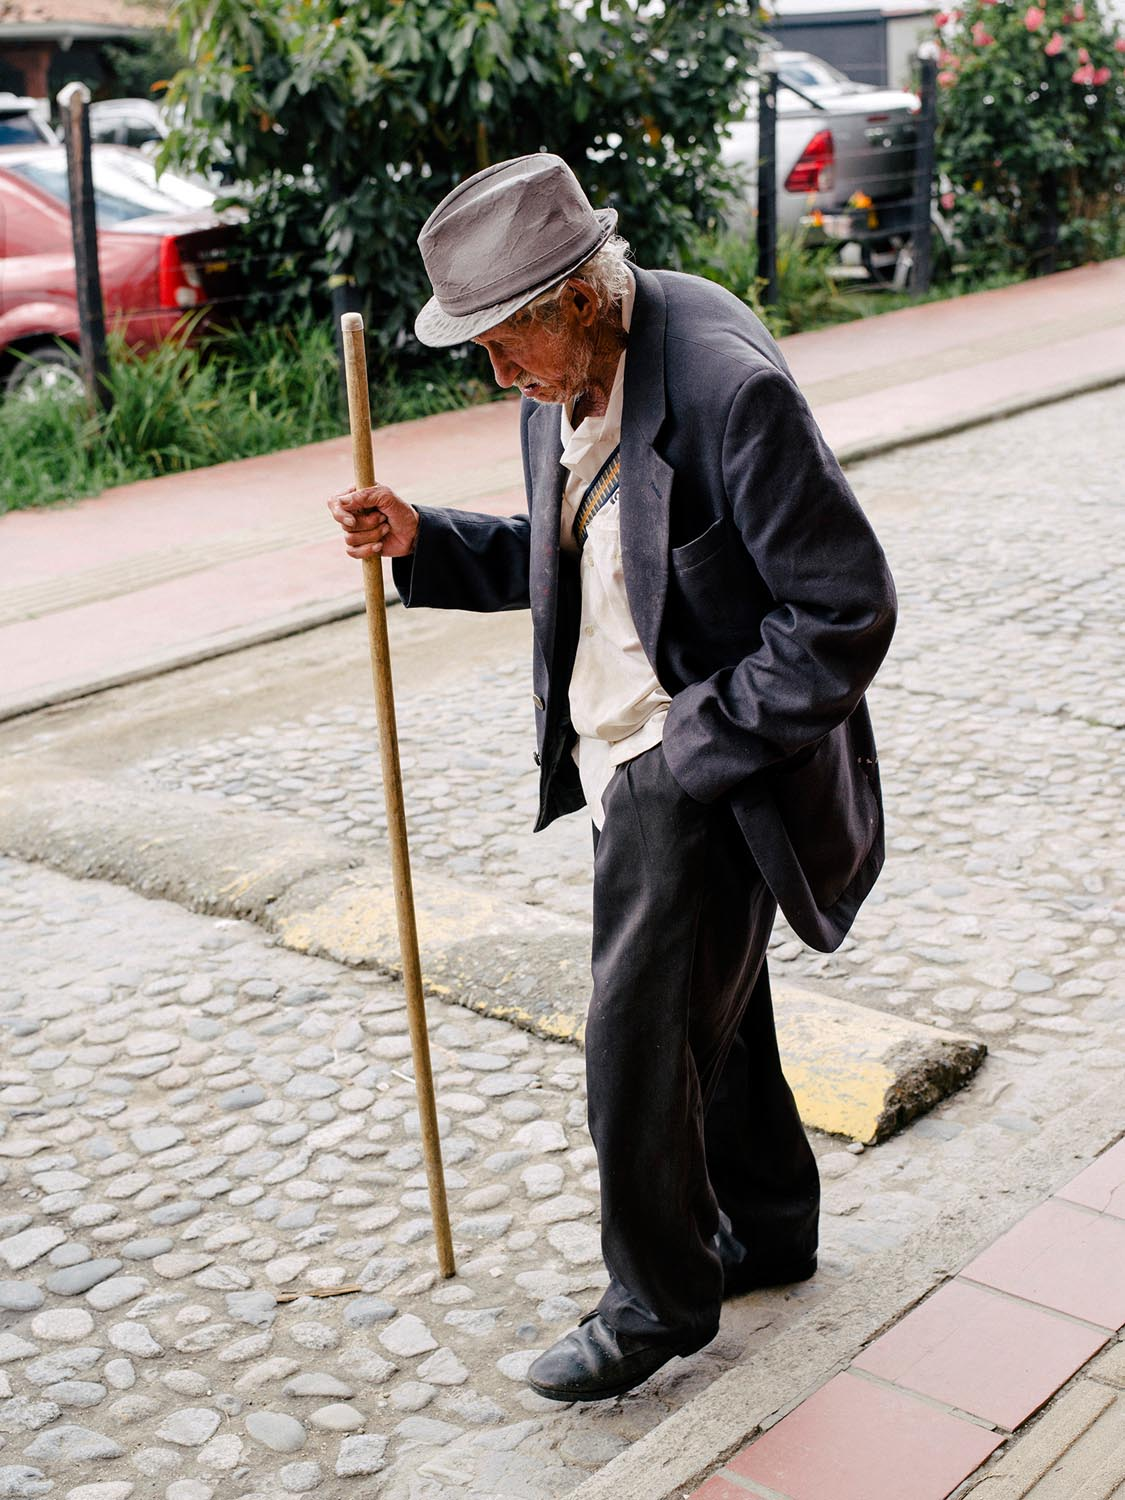 Old man strolling down the street.